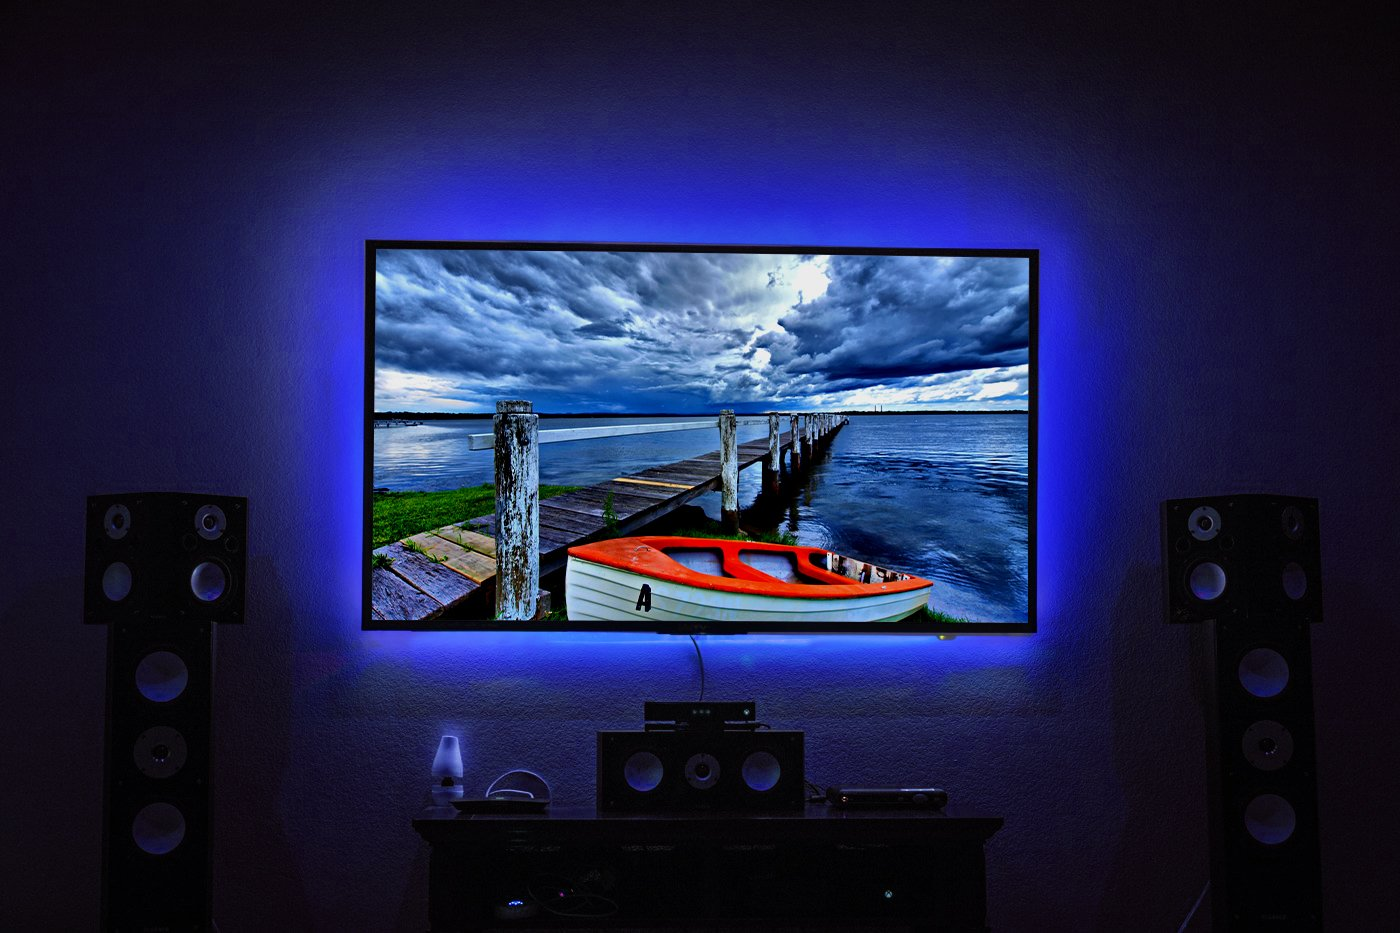 LED TV Backlight, Maylit 2M/6.56ft RGB Neon Accent LED Lights Strips for 40 to 60 in HDTV Neon Light Bias Lighting with Remote, USB LED Strips TV Backlight by maylit (Image #3)